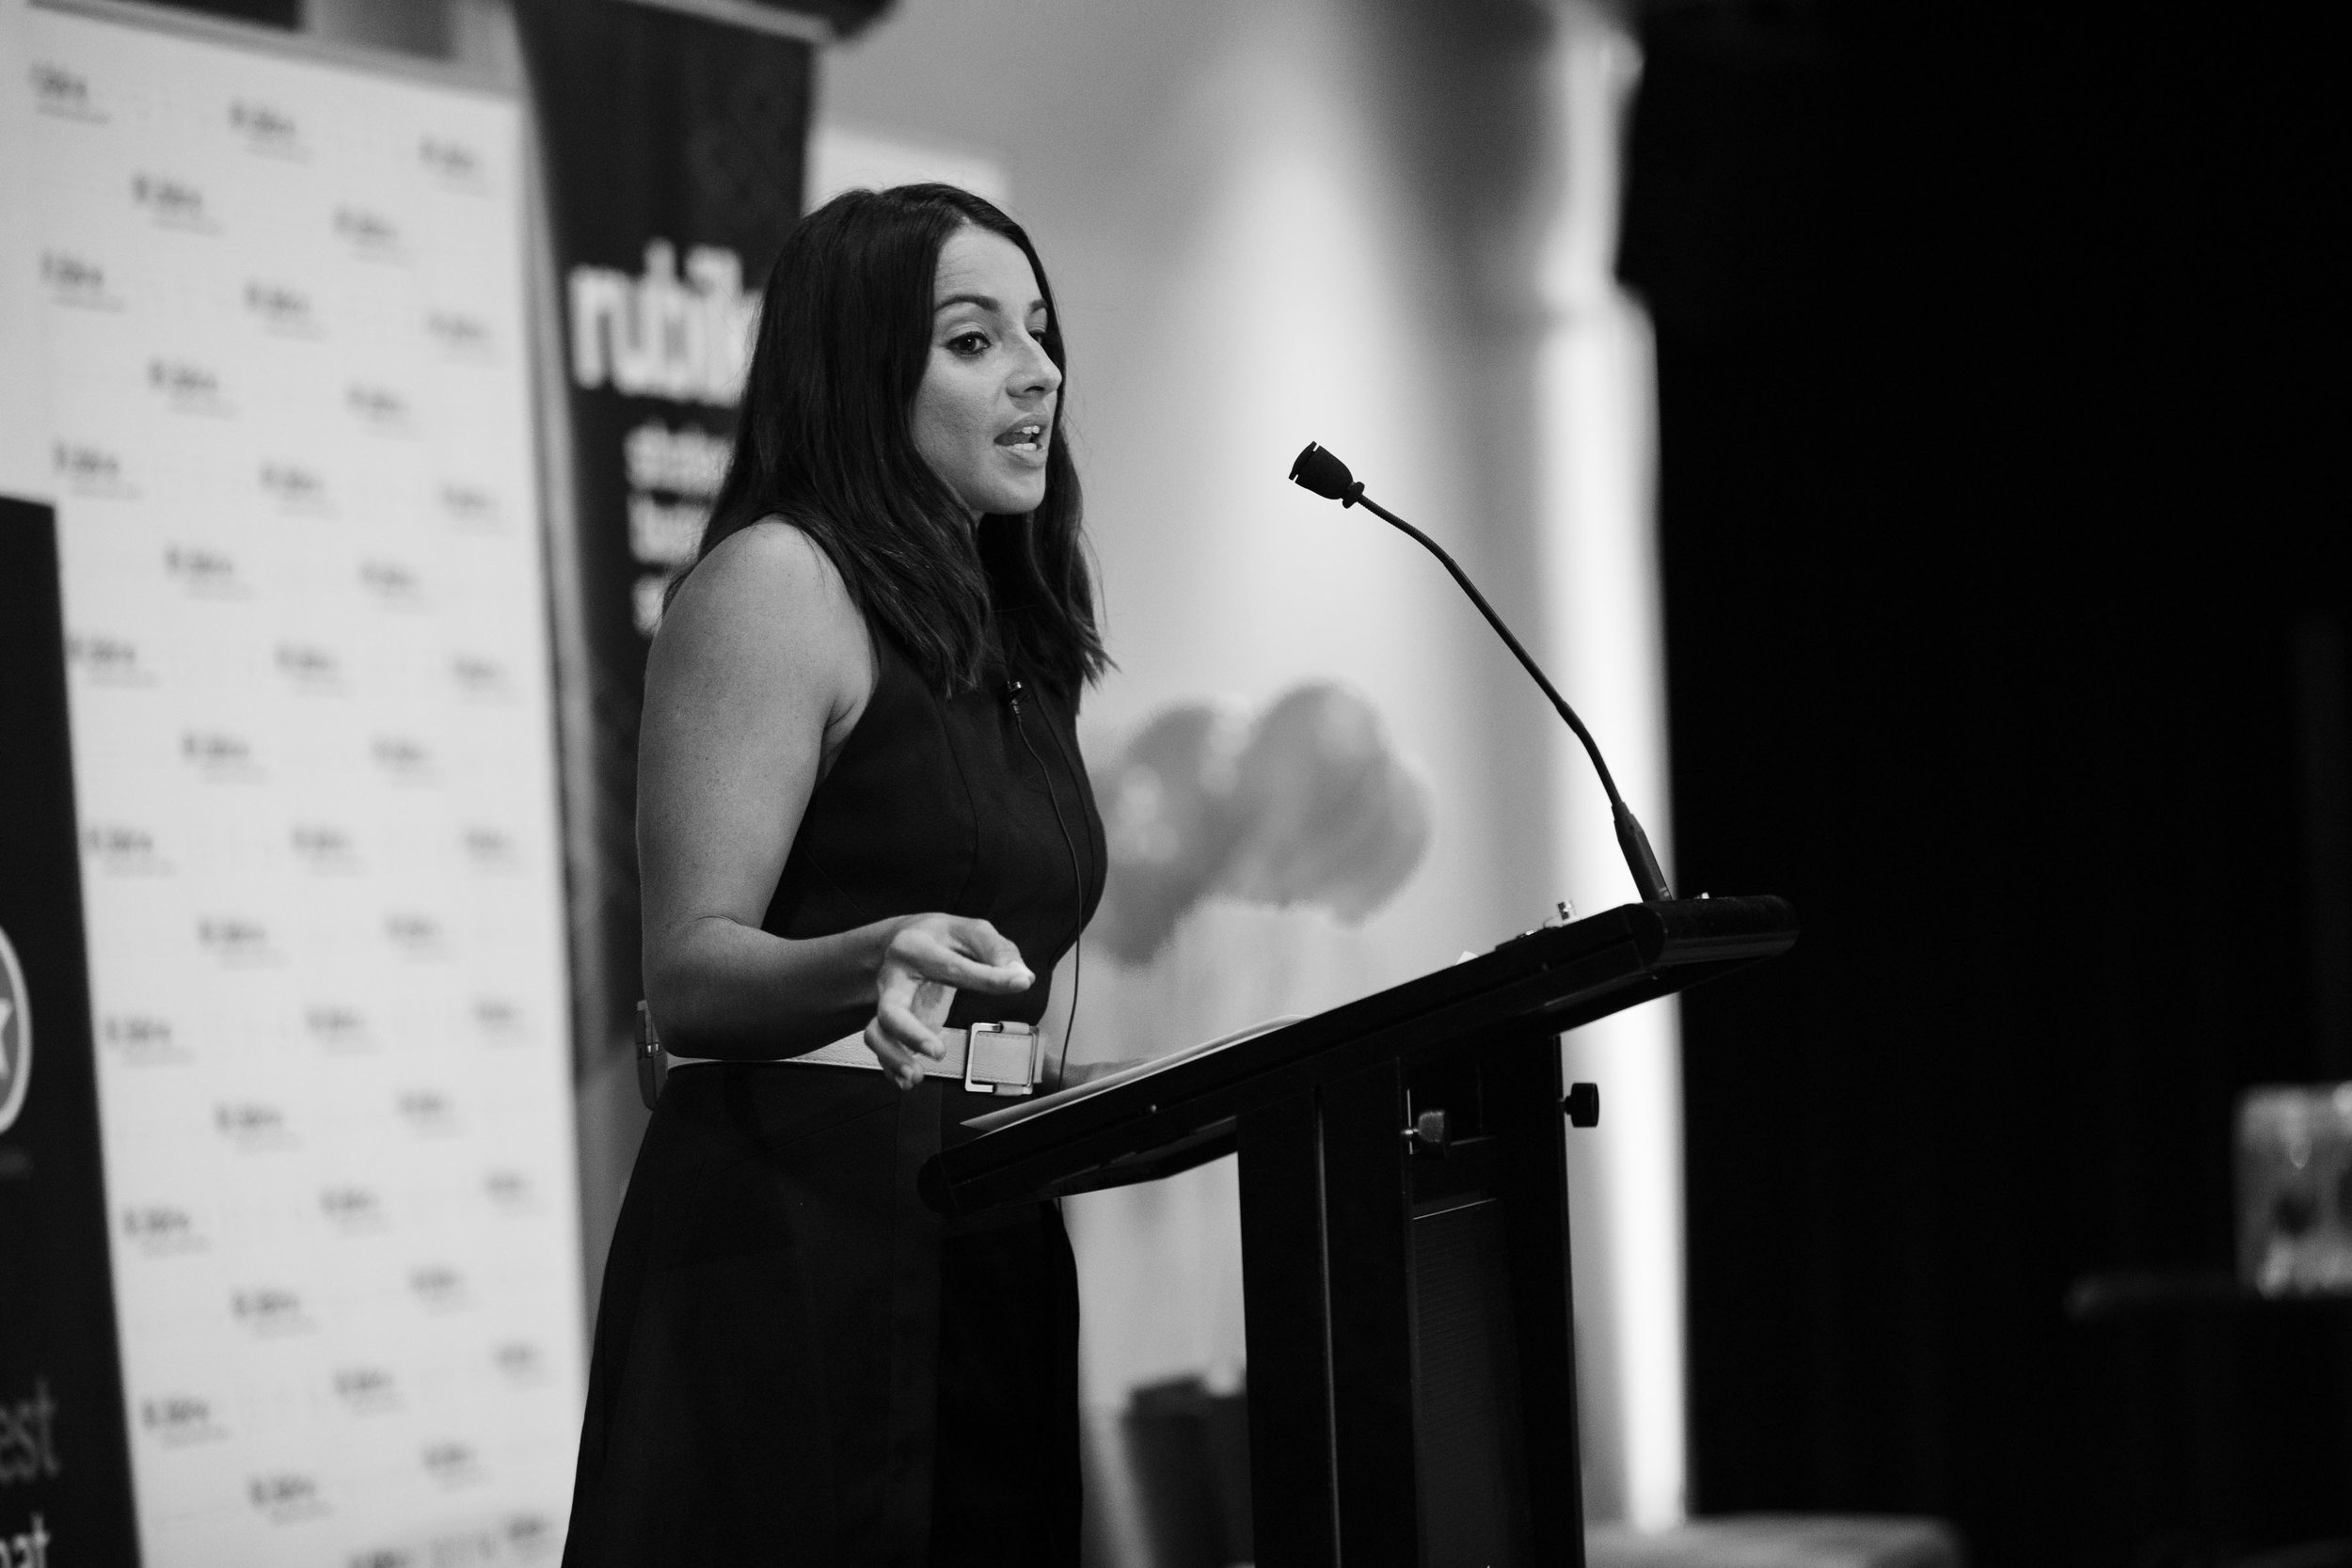 Maz's keynote at the CPA Women in Business Lunch 'How To Nurture Your Hustle'